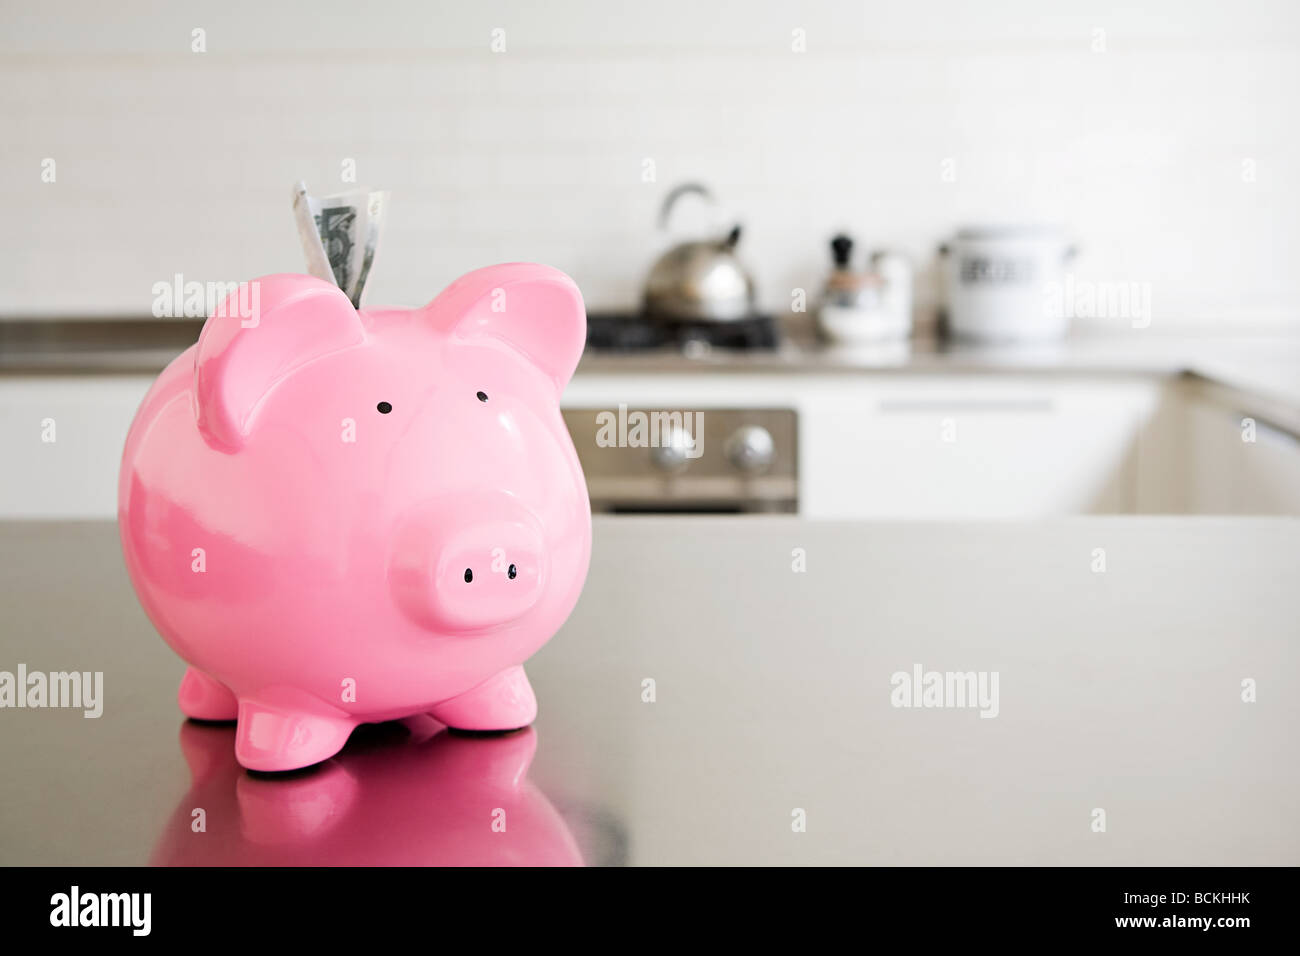 Piggy bank with money in slot - Stock Image